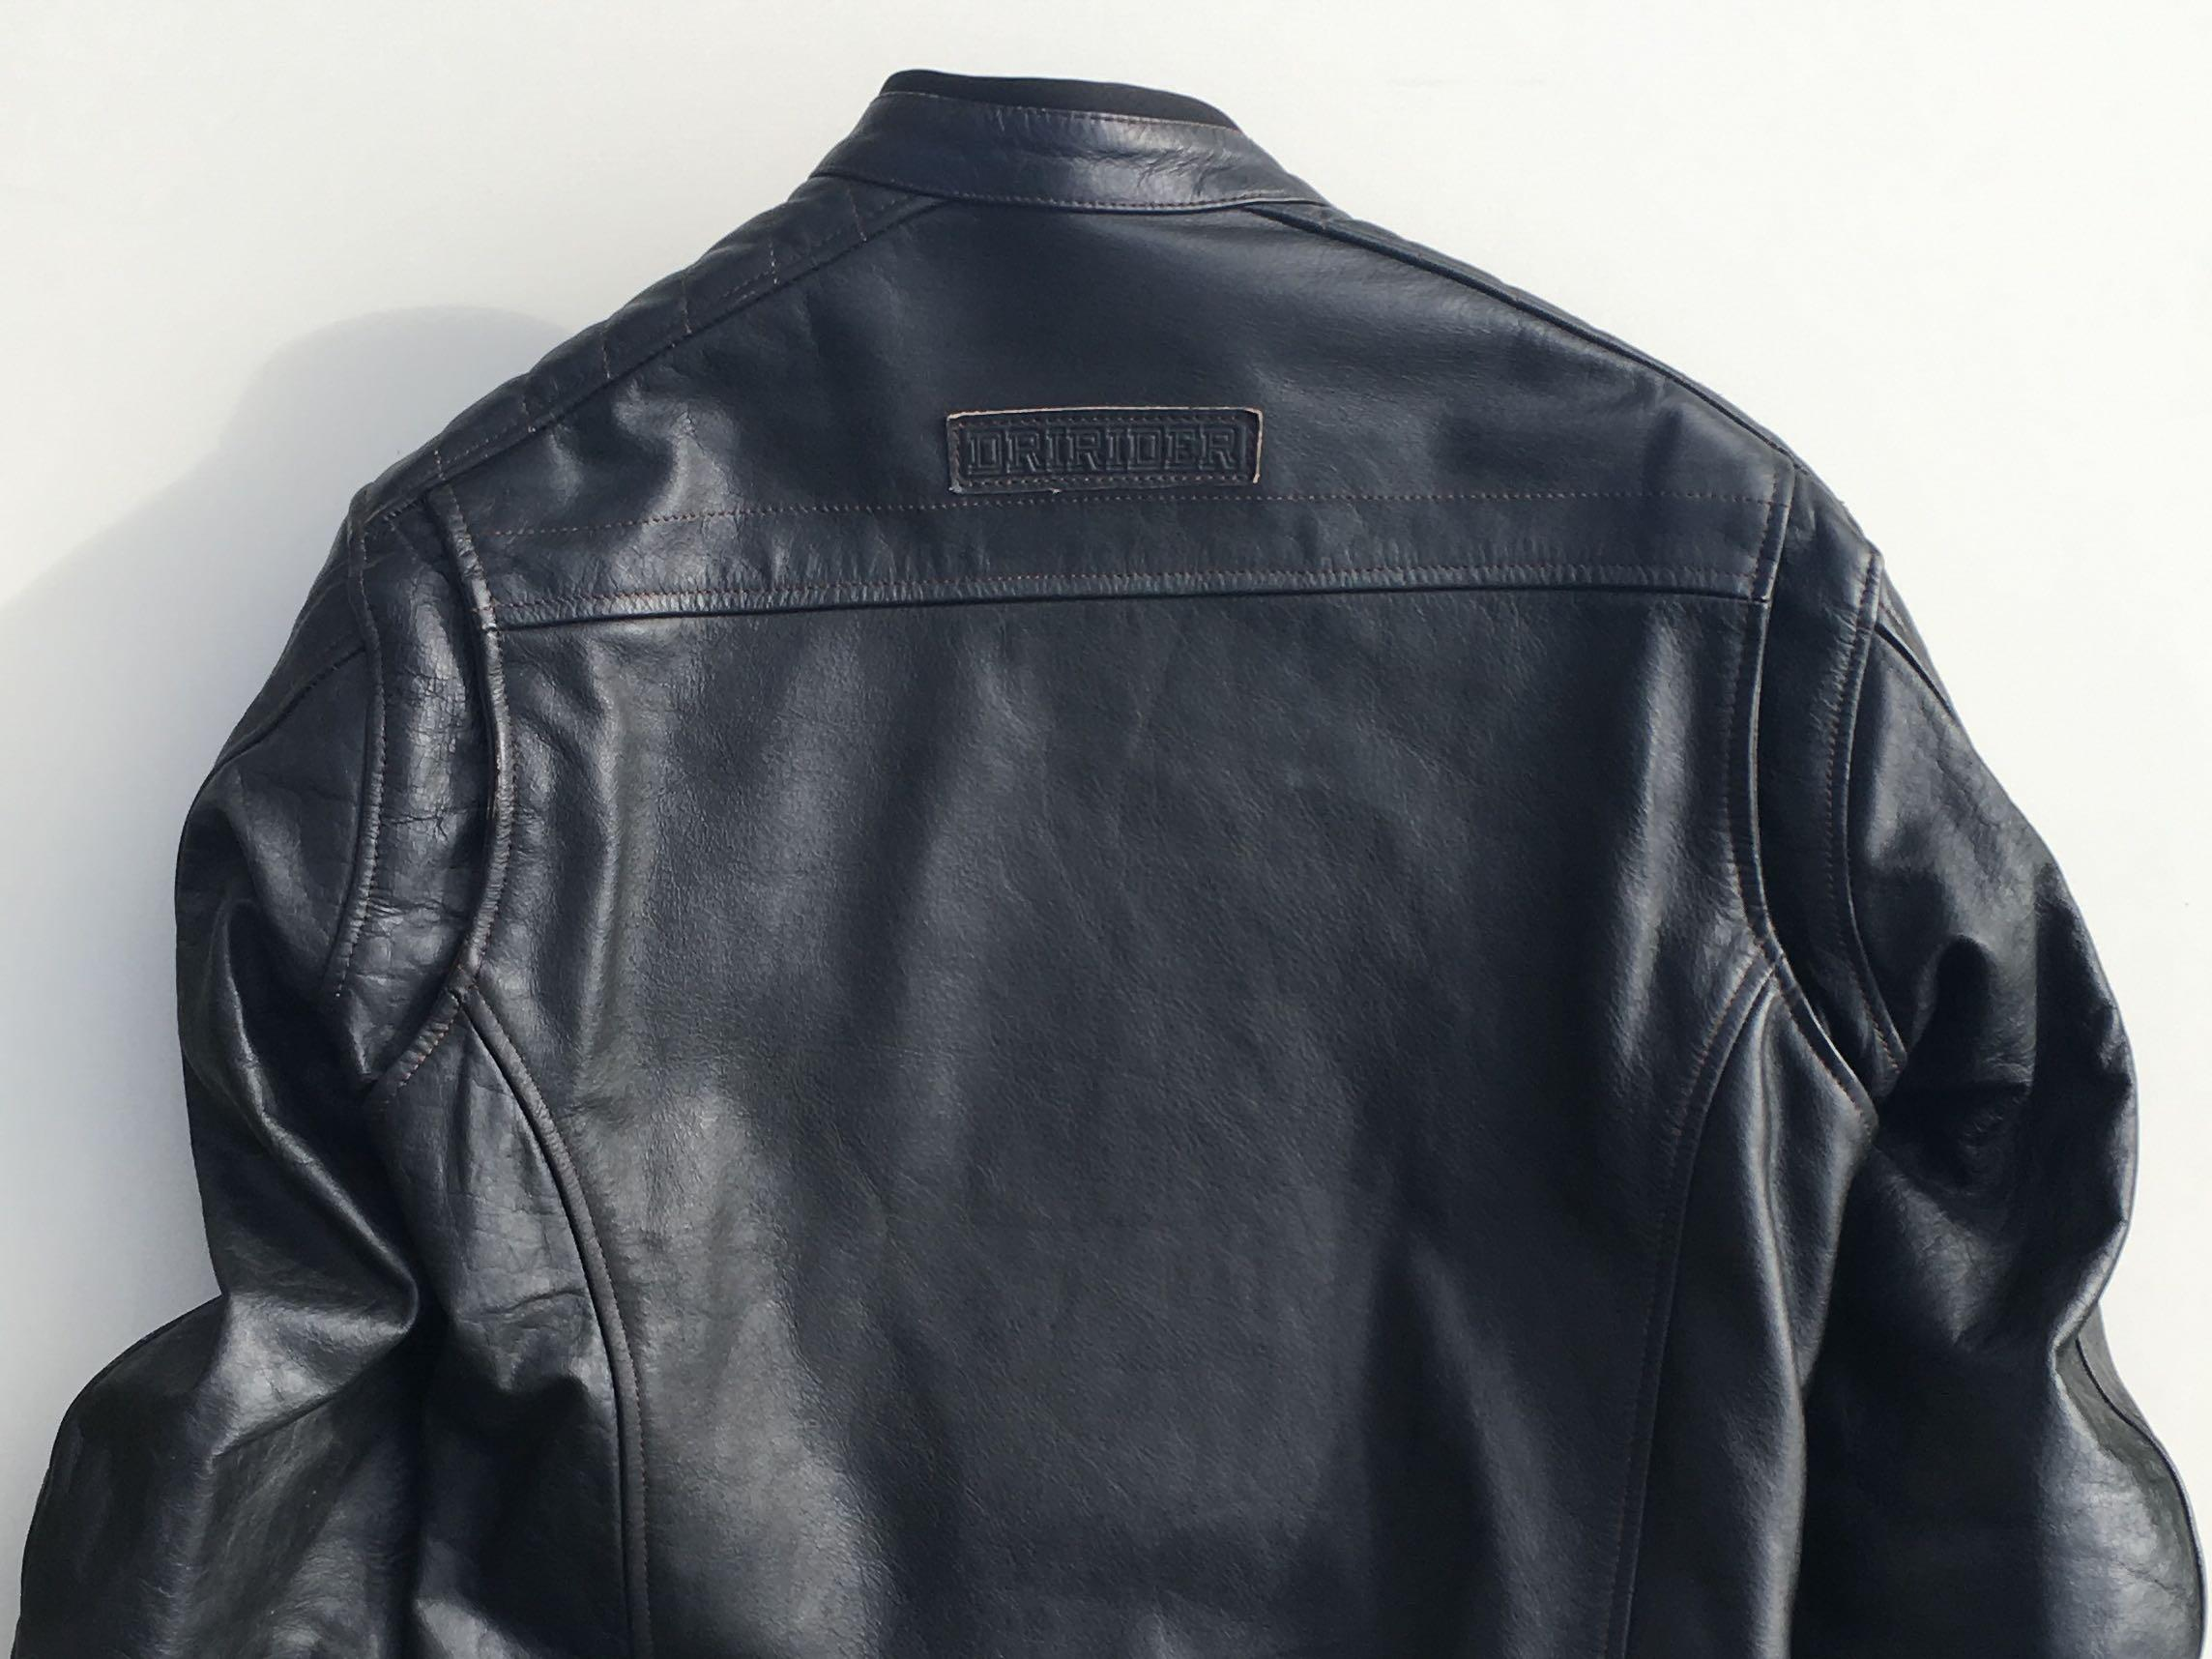 NEARLY NEW Motorcycle Jacket - Dririder GT Leather Jacket